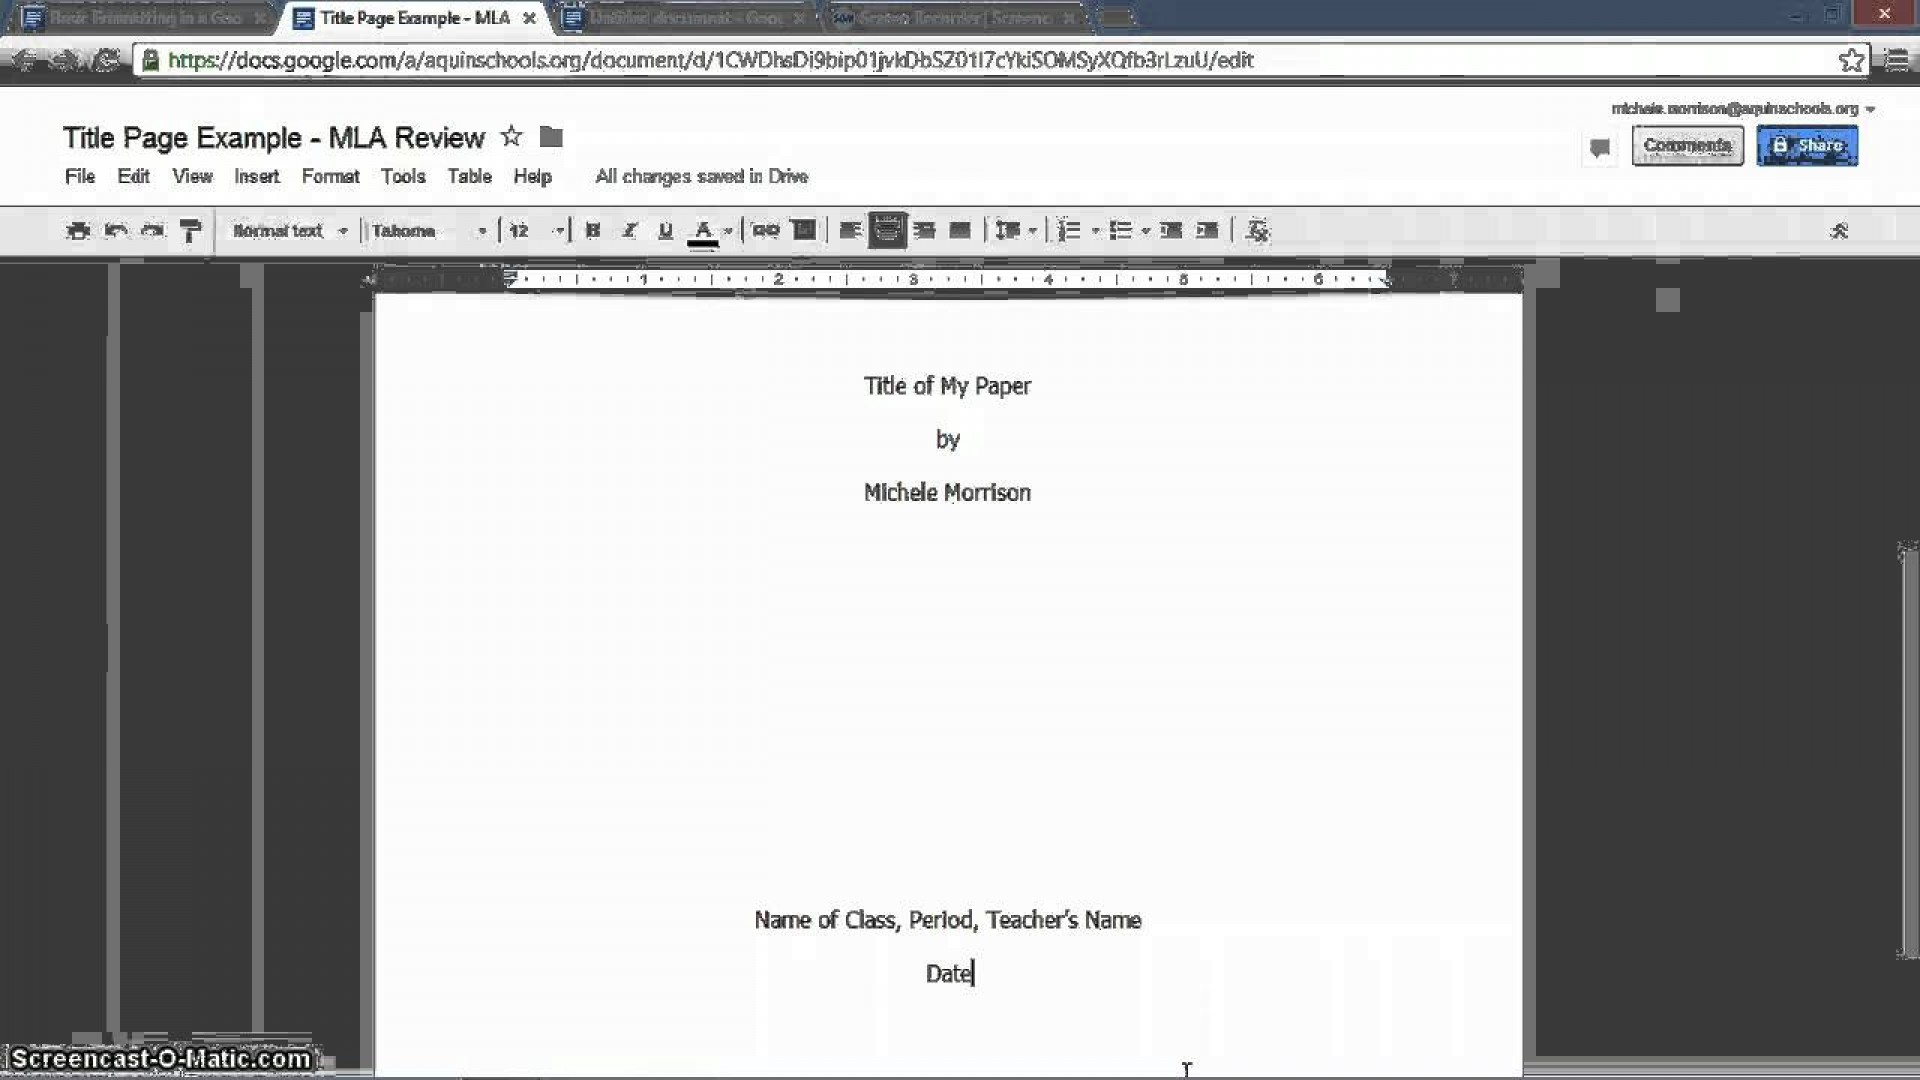 014 How To Make Cover Page For Mla Research Paper Marvelous A 1920